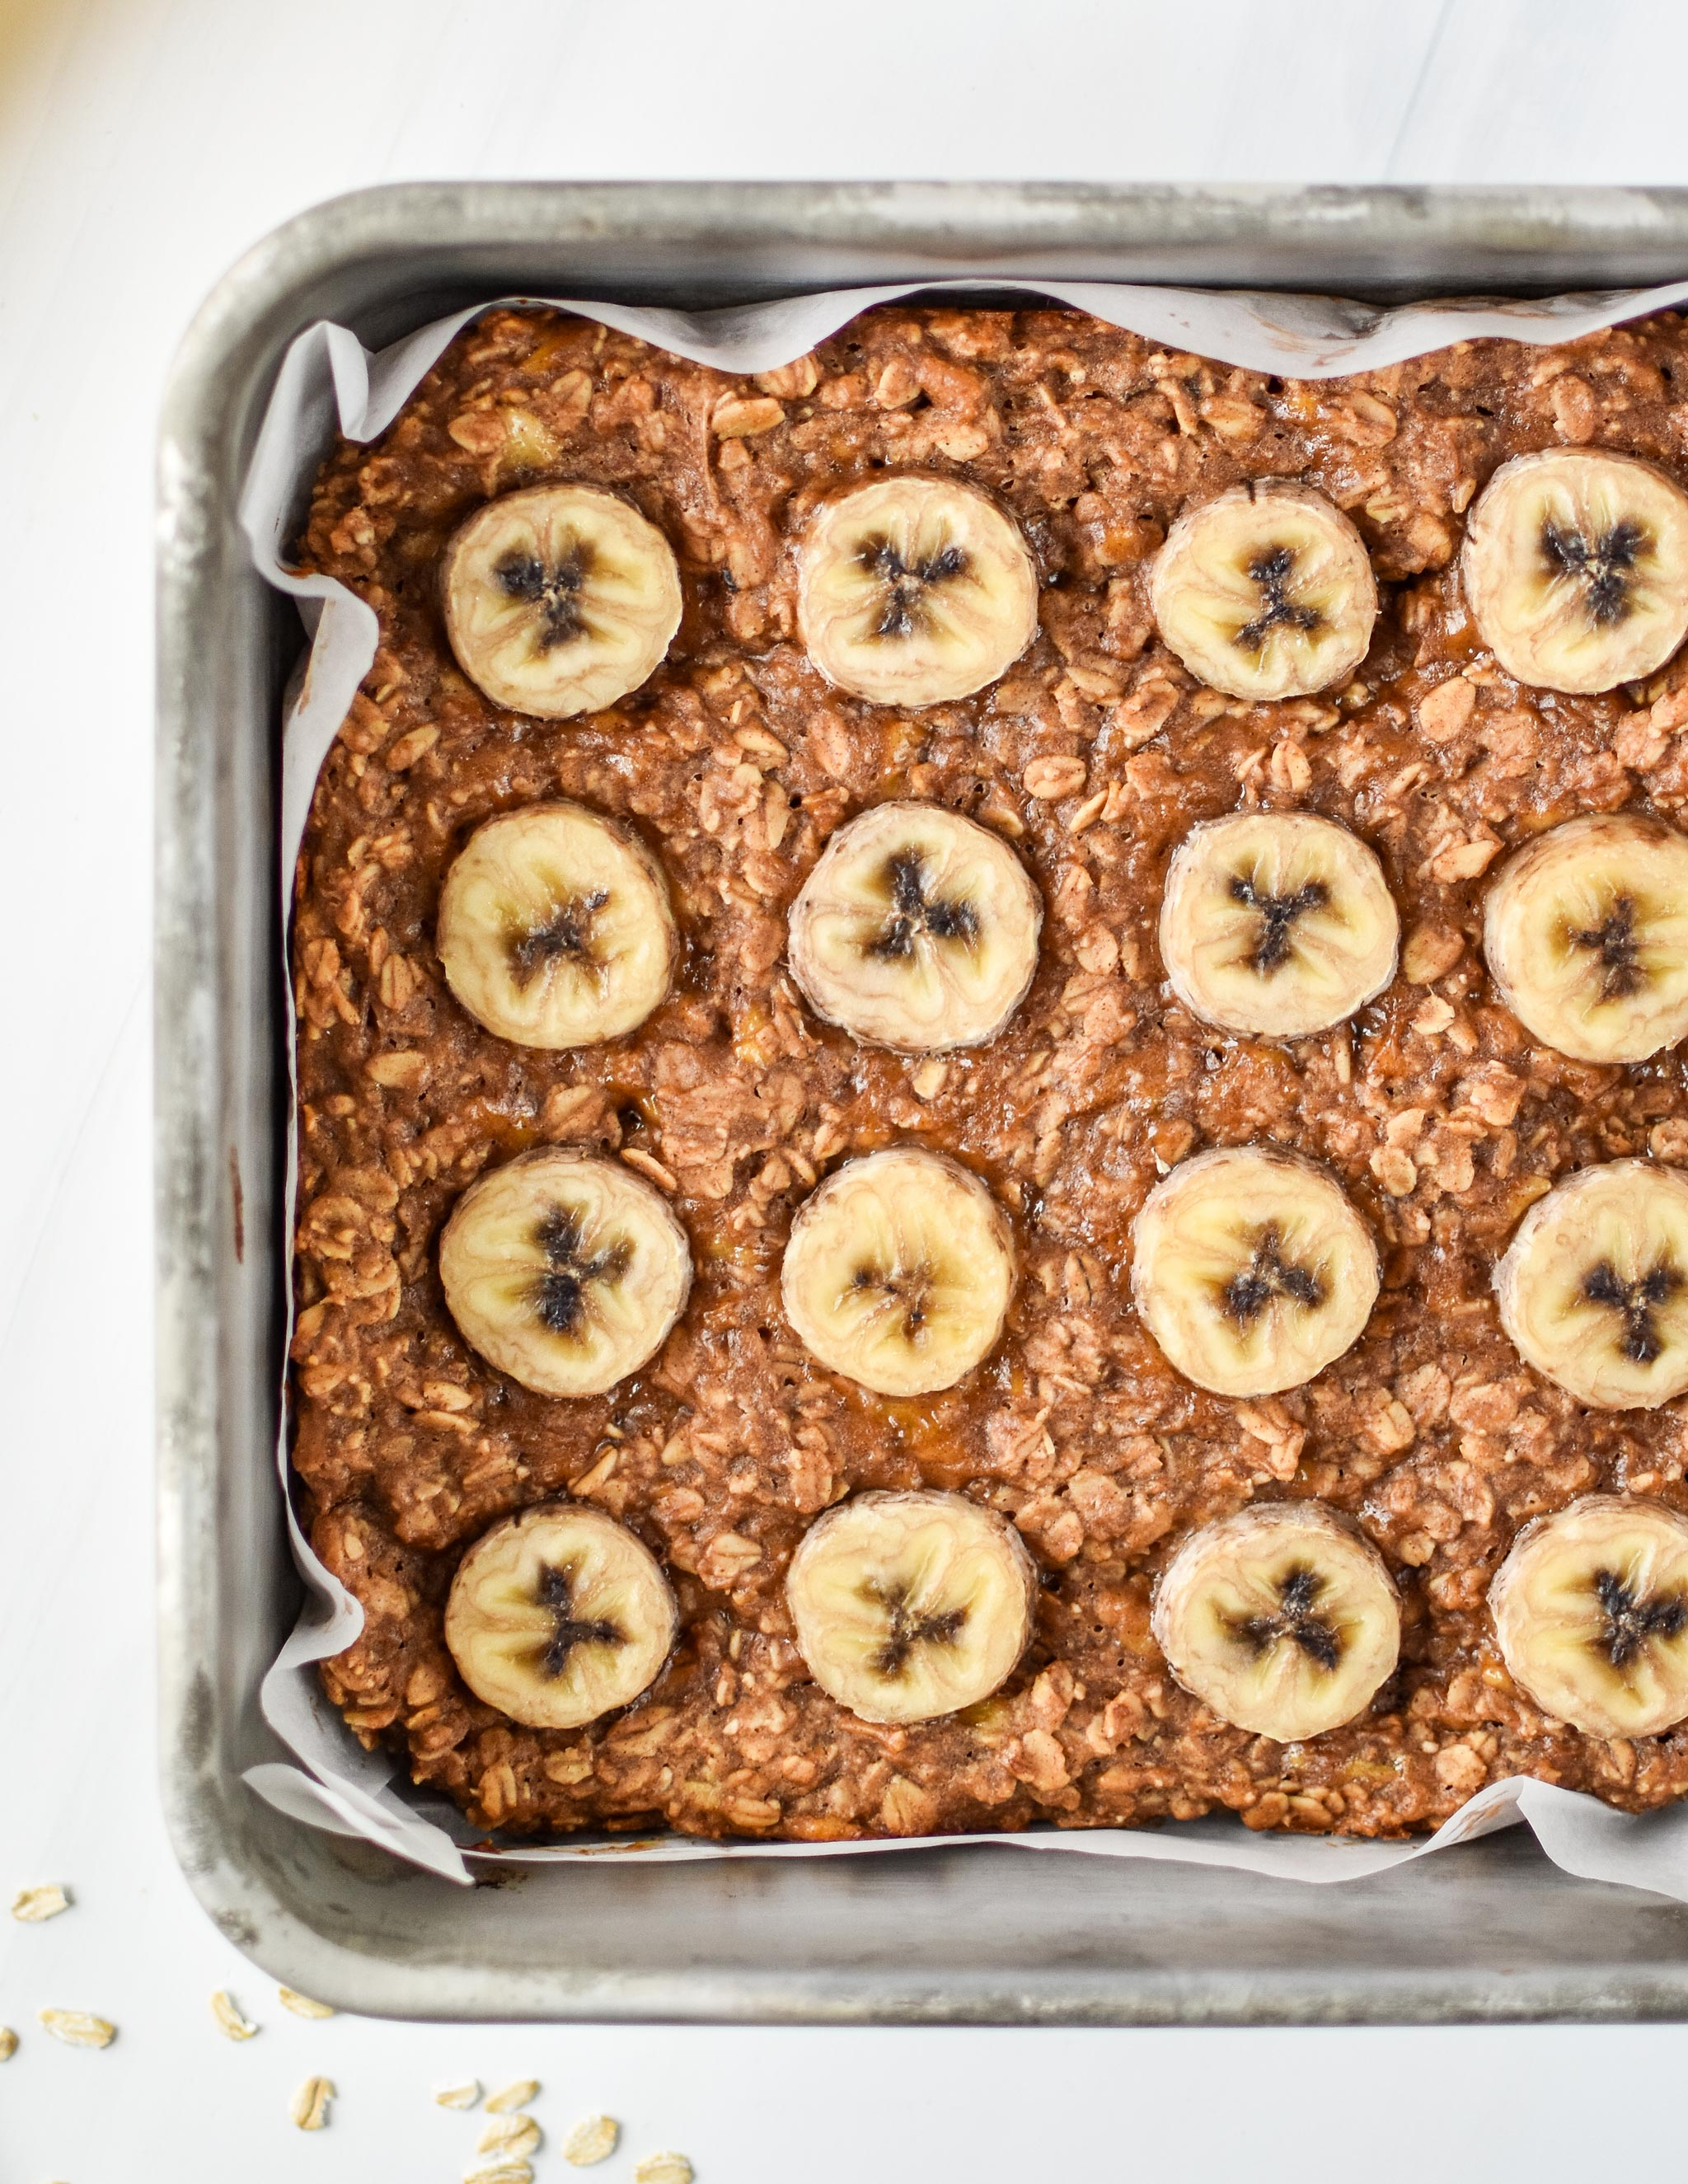 Fresh from the oven before being cut - PB Banana Oatmeal Breakfast Bars.